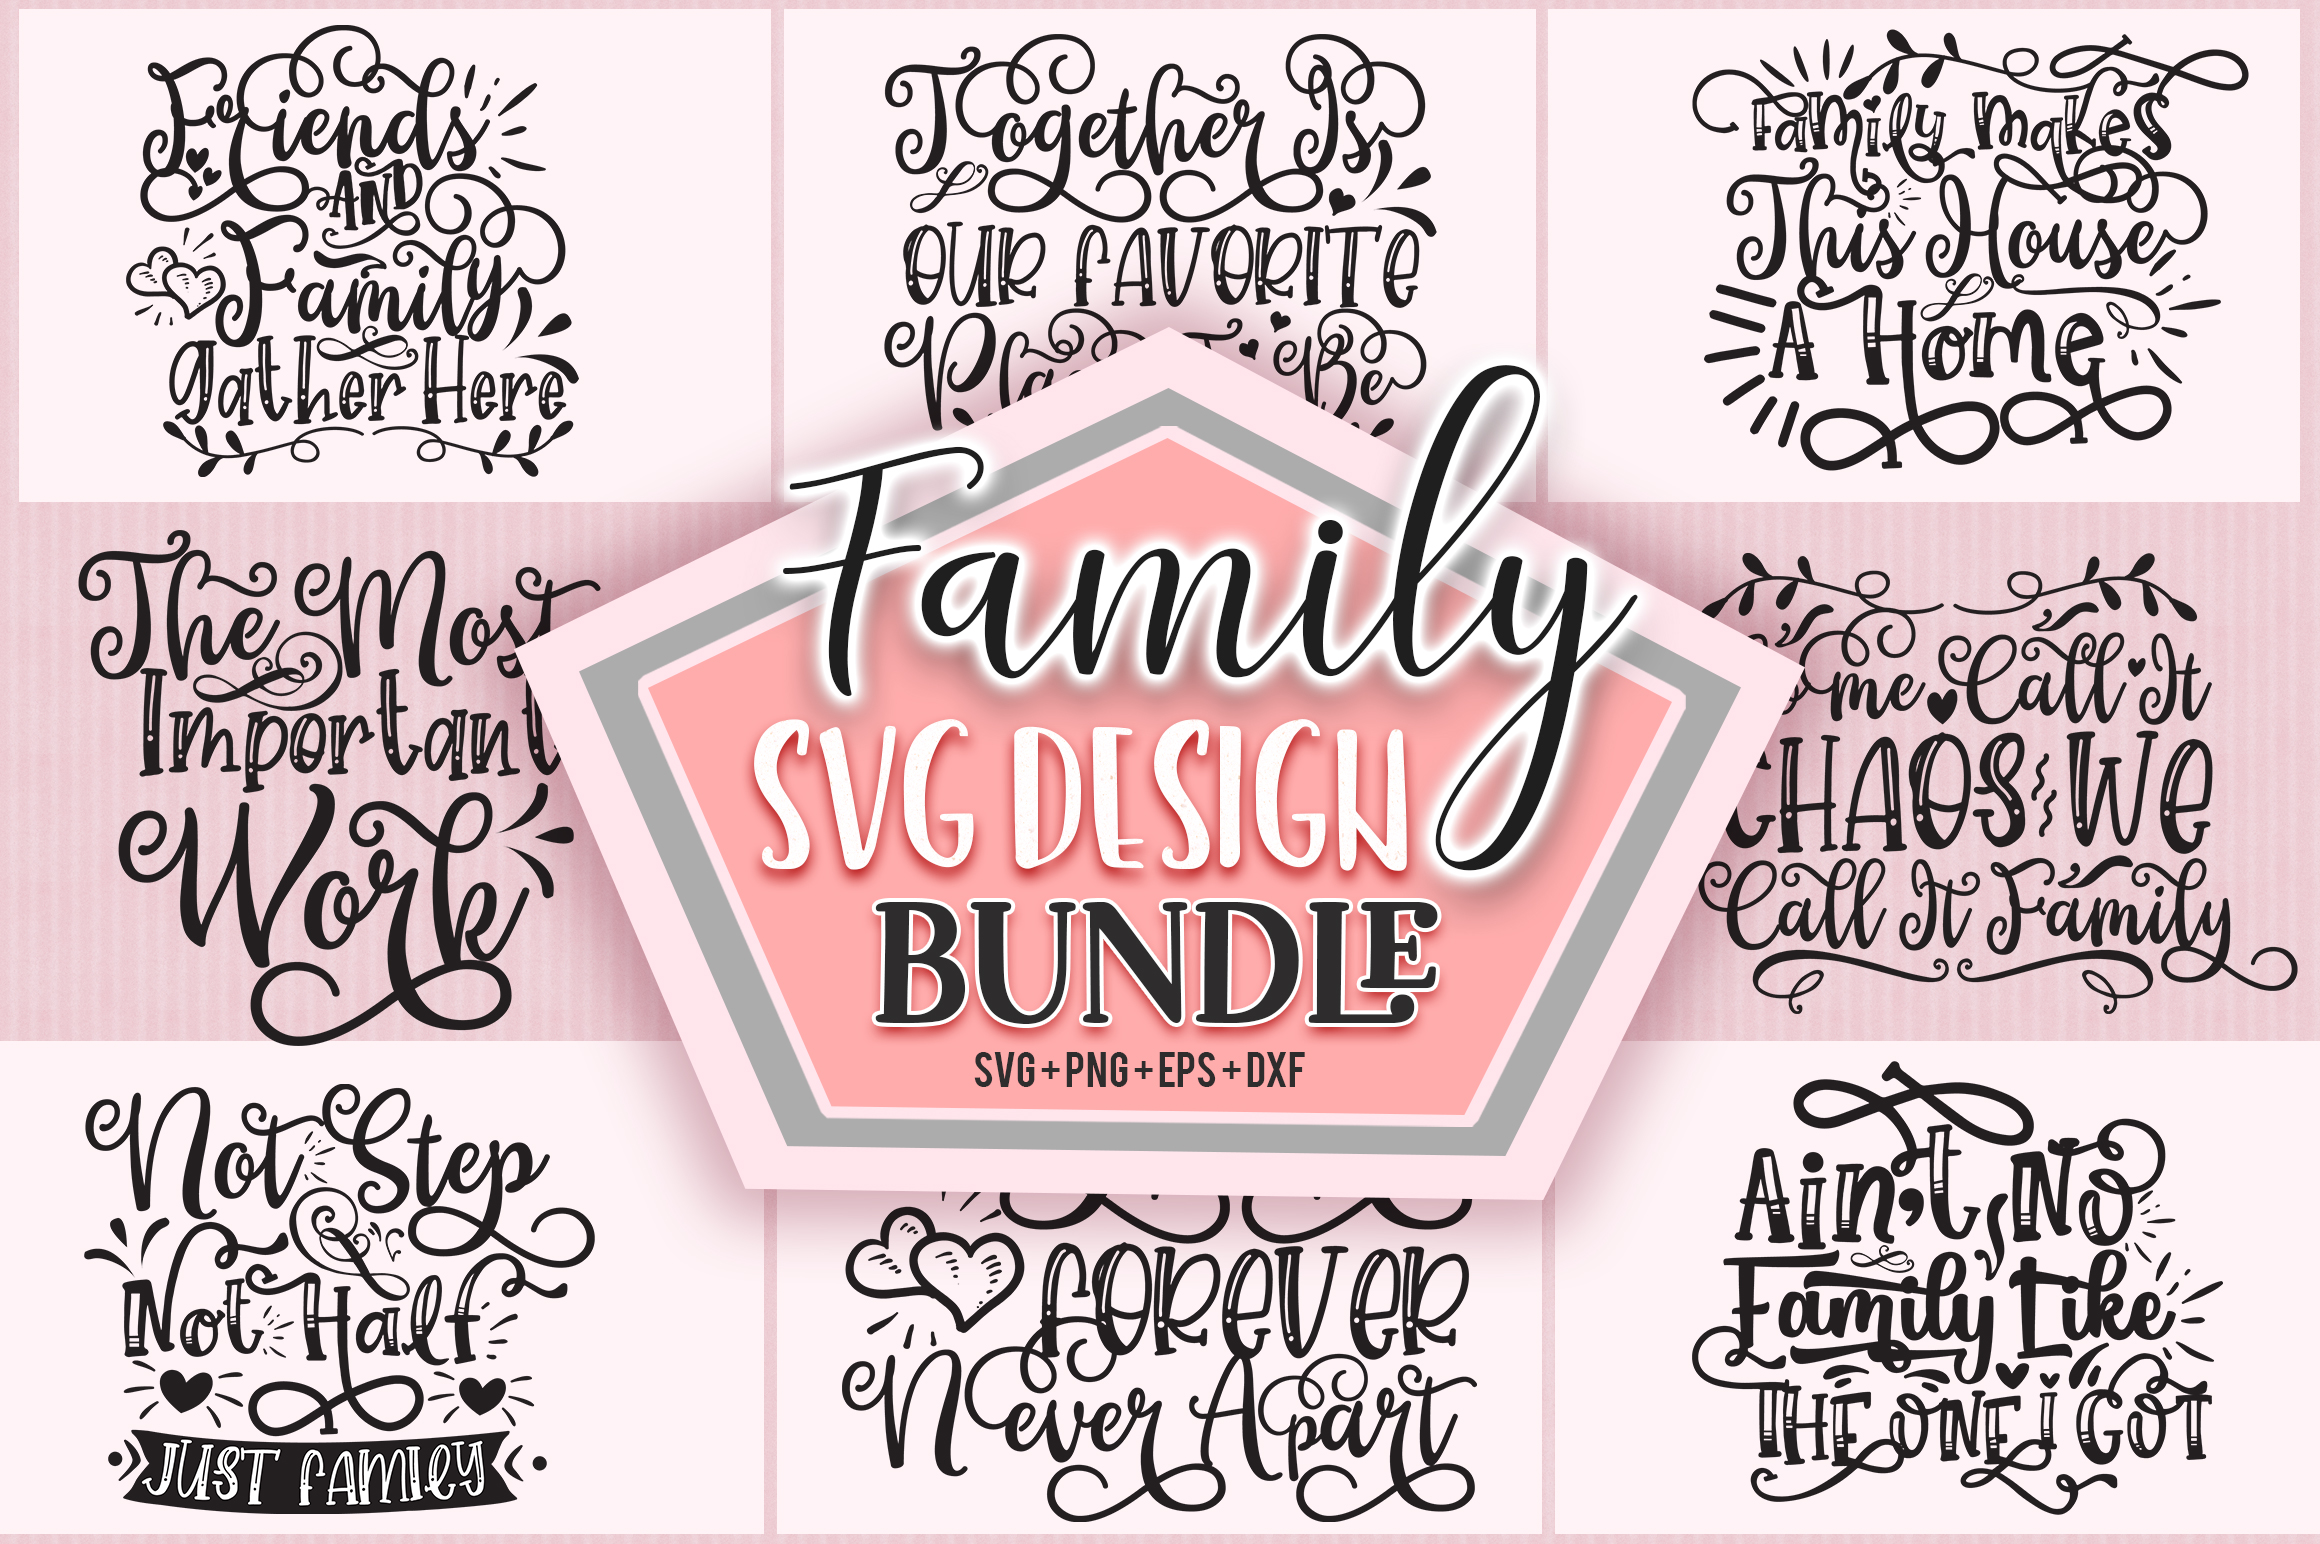 Download Free Family Design Bundle Graphic By Subornastudio Creative Fabrica for Cricut Explore, Silhouette and other cutting machines.